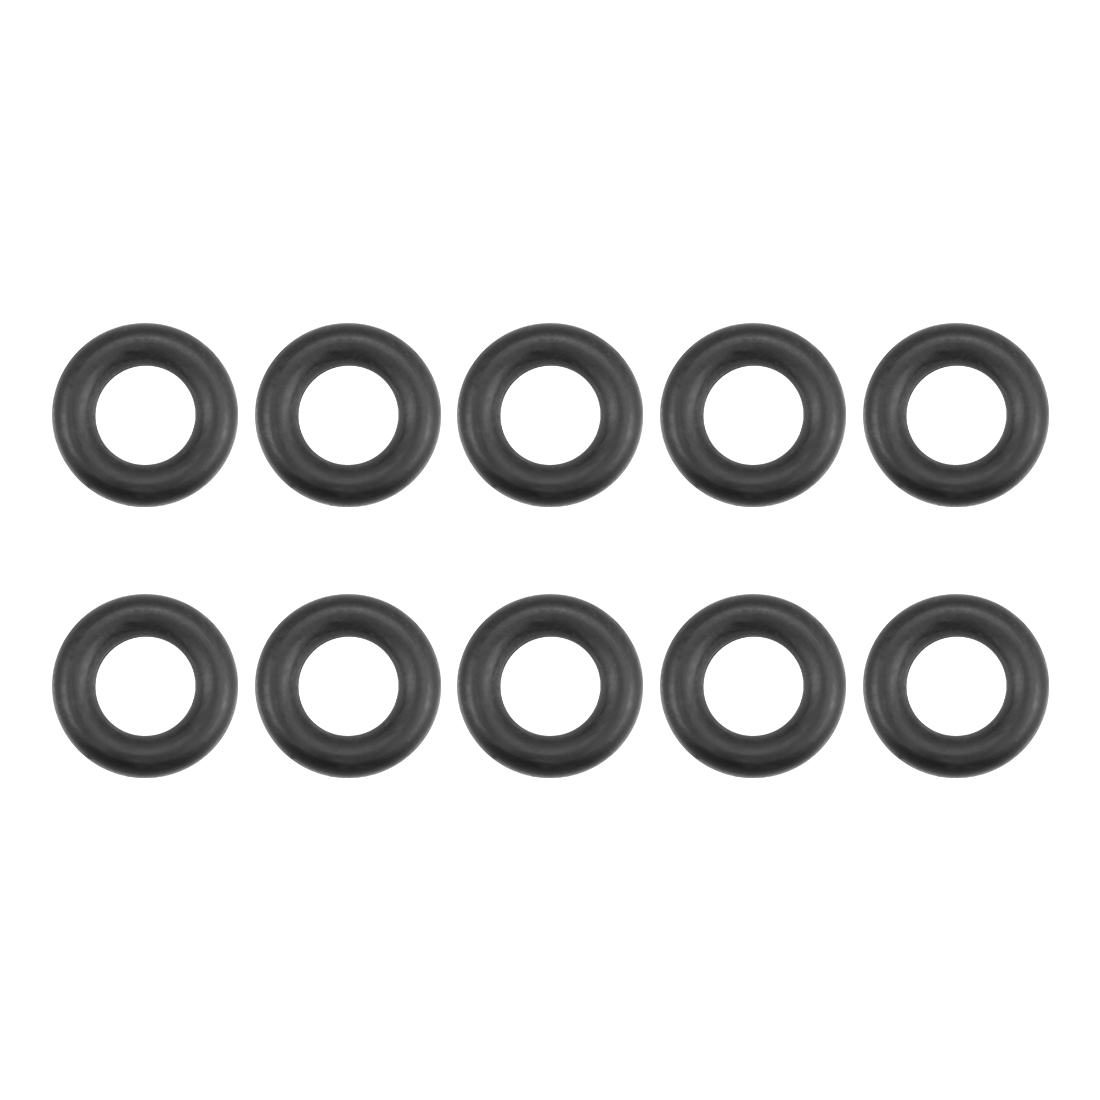 O-Rings Nitrile Rubber 6mm x 11.3mm x 2.65mm Round Seal Gasket 10 Pcs